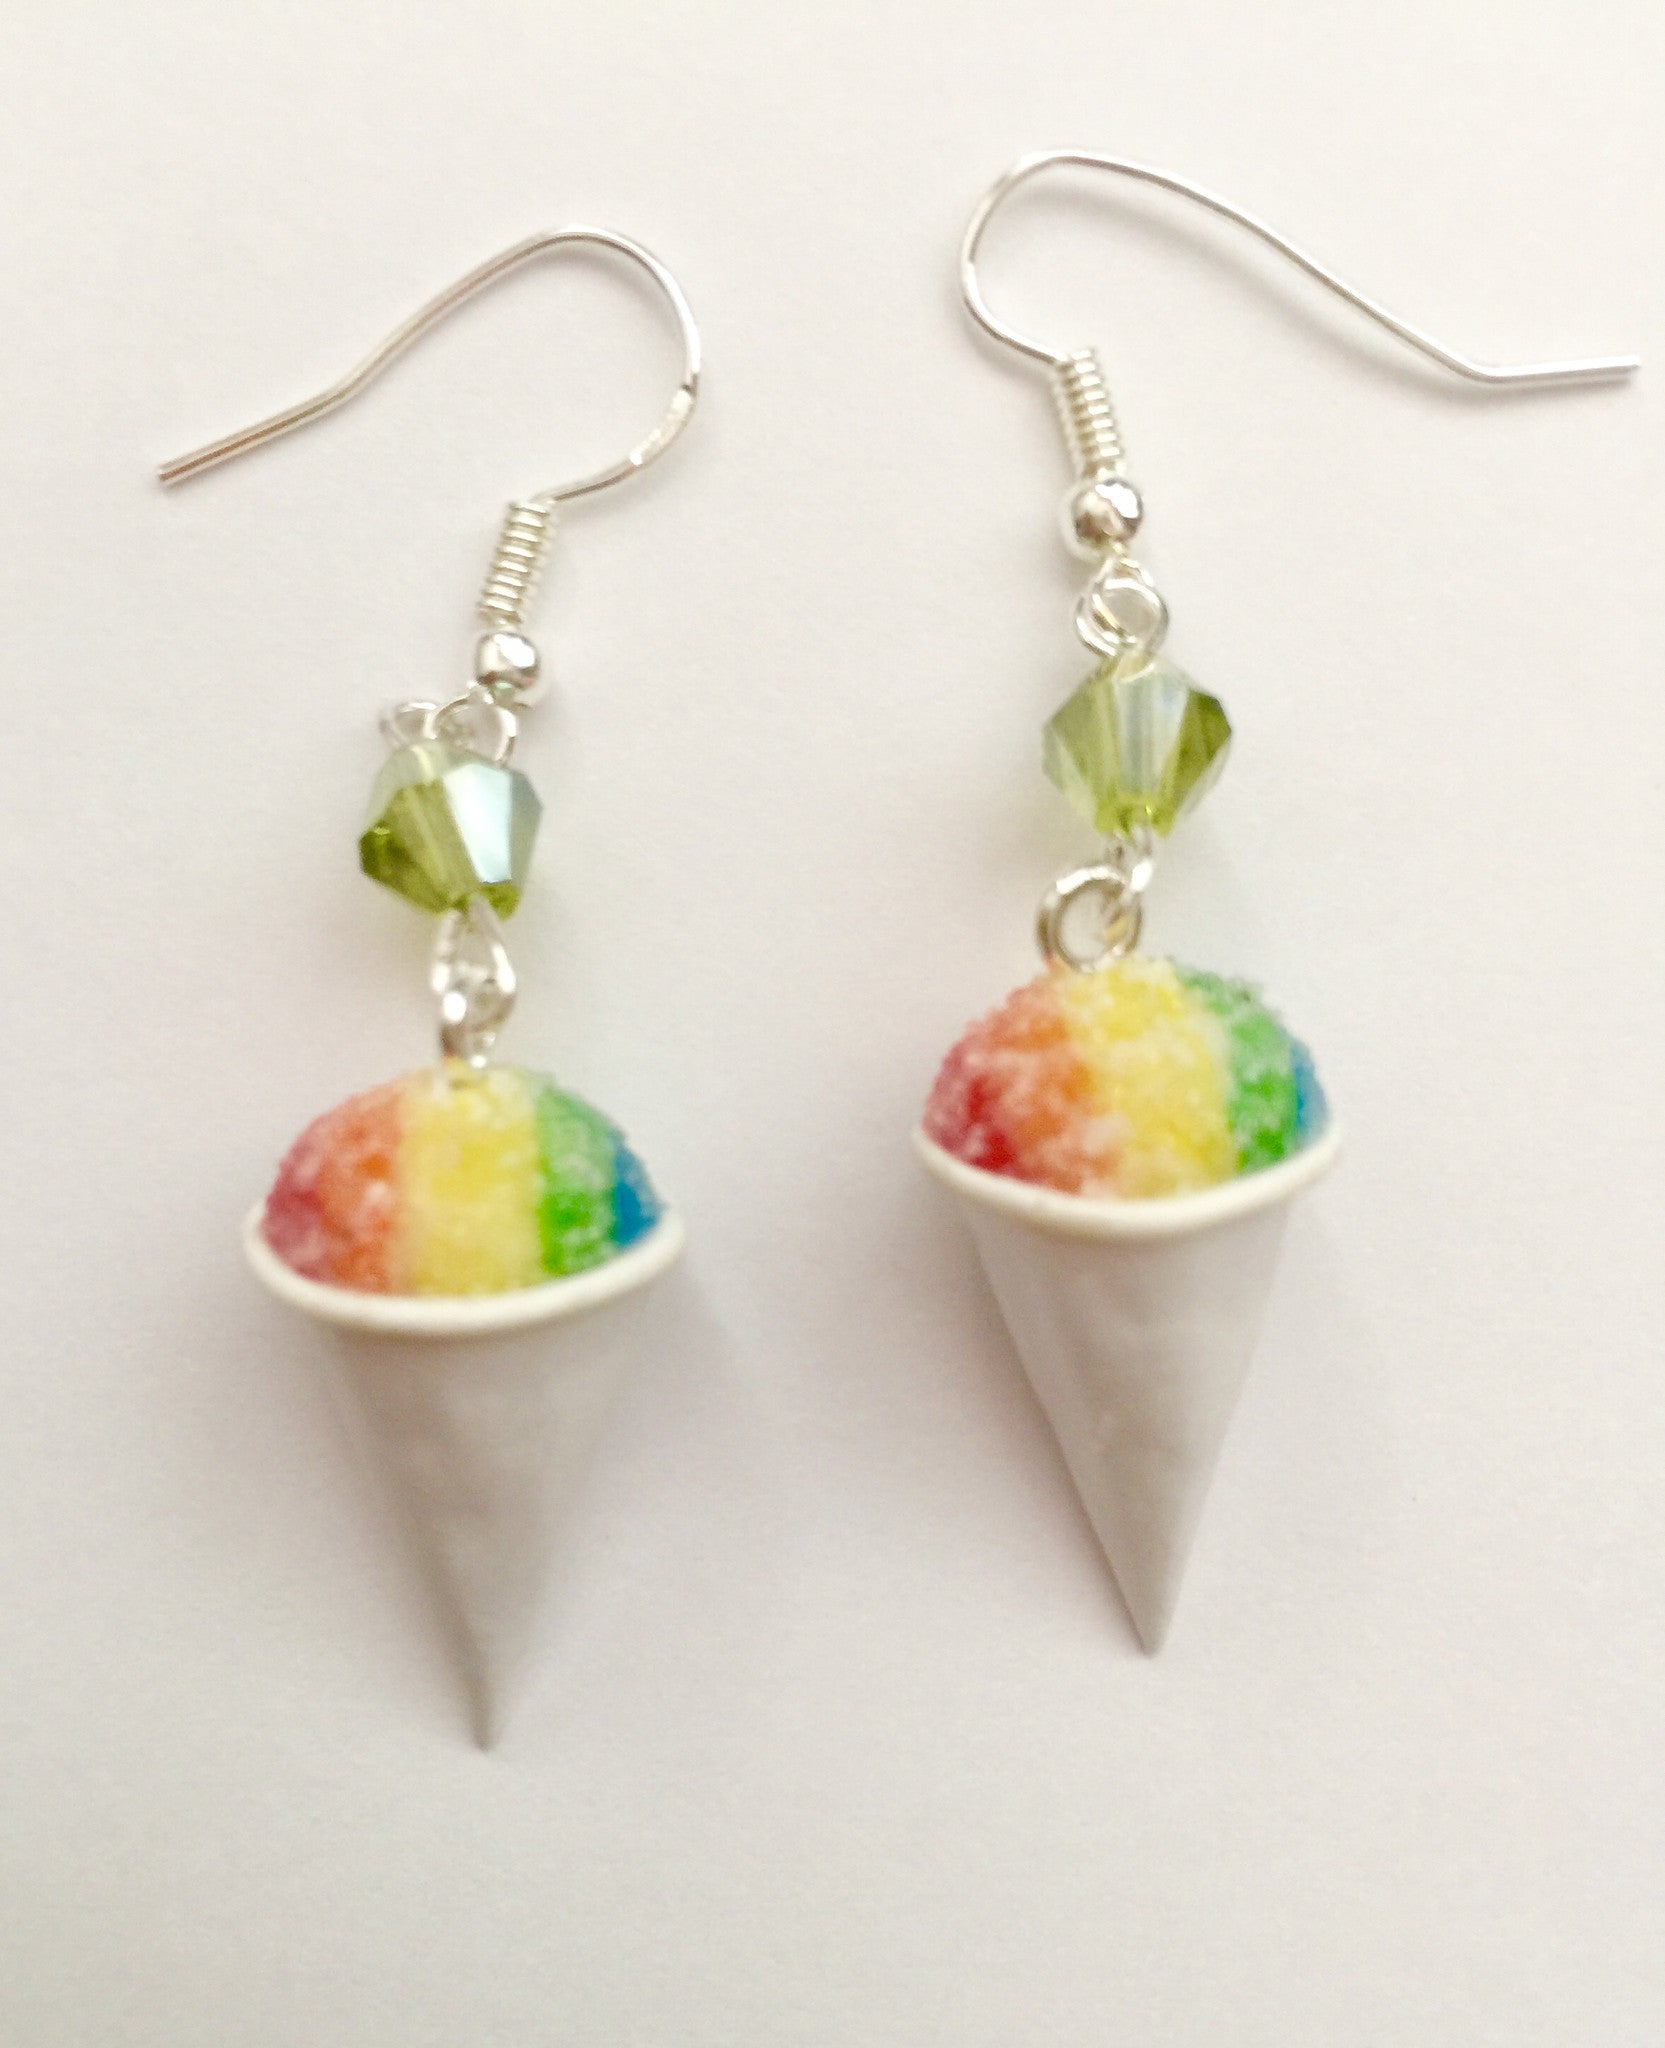 Snow Cone Dangle Earrings - Jillicious charms and accessories